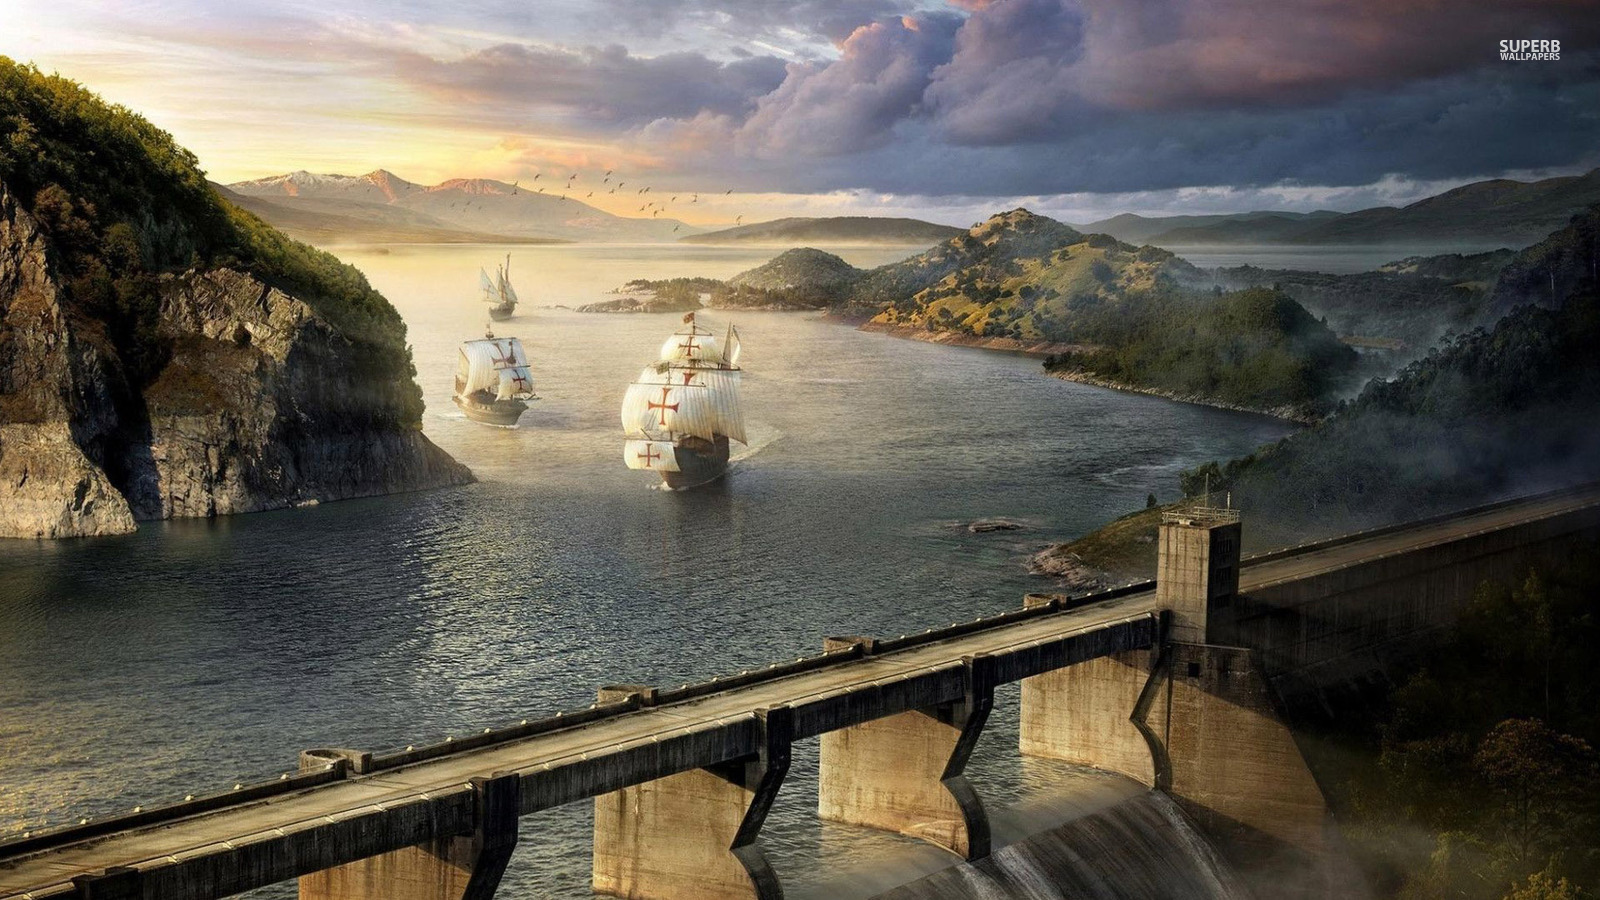 Pirates images pirate ship hd wallpaper and background photos 38694454 - Wallpaper photos ...